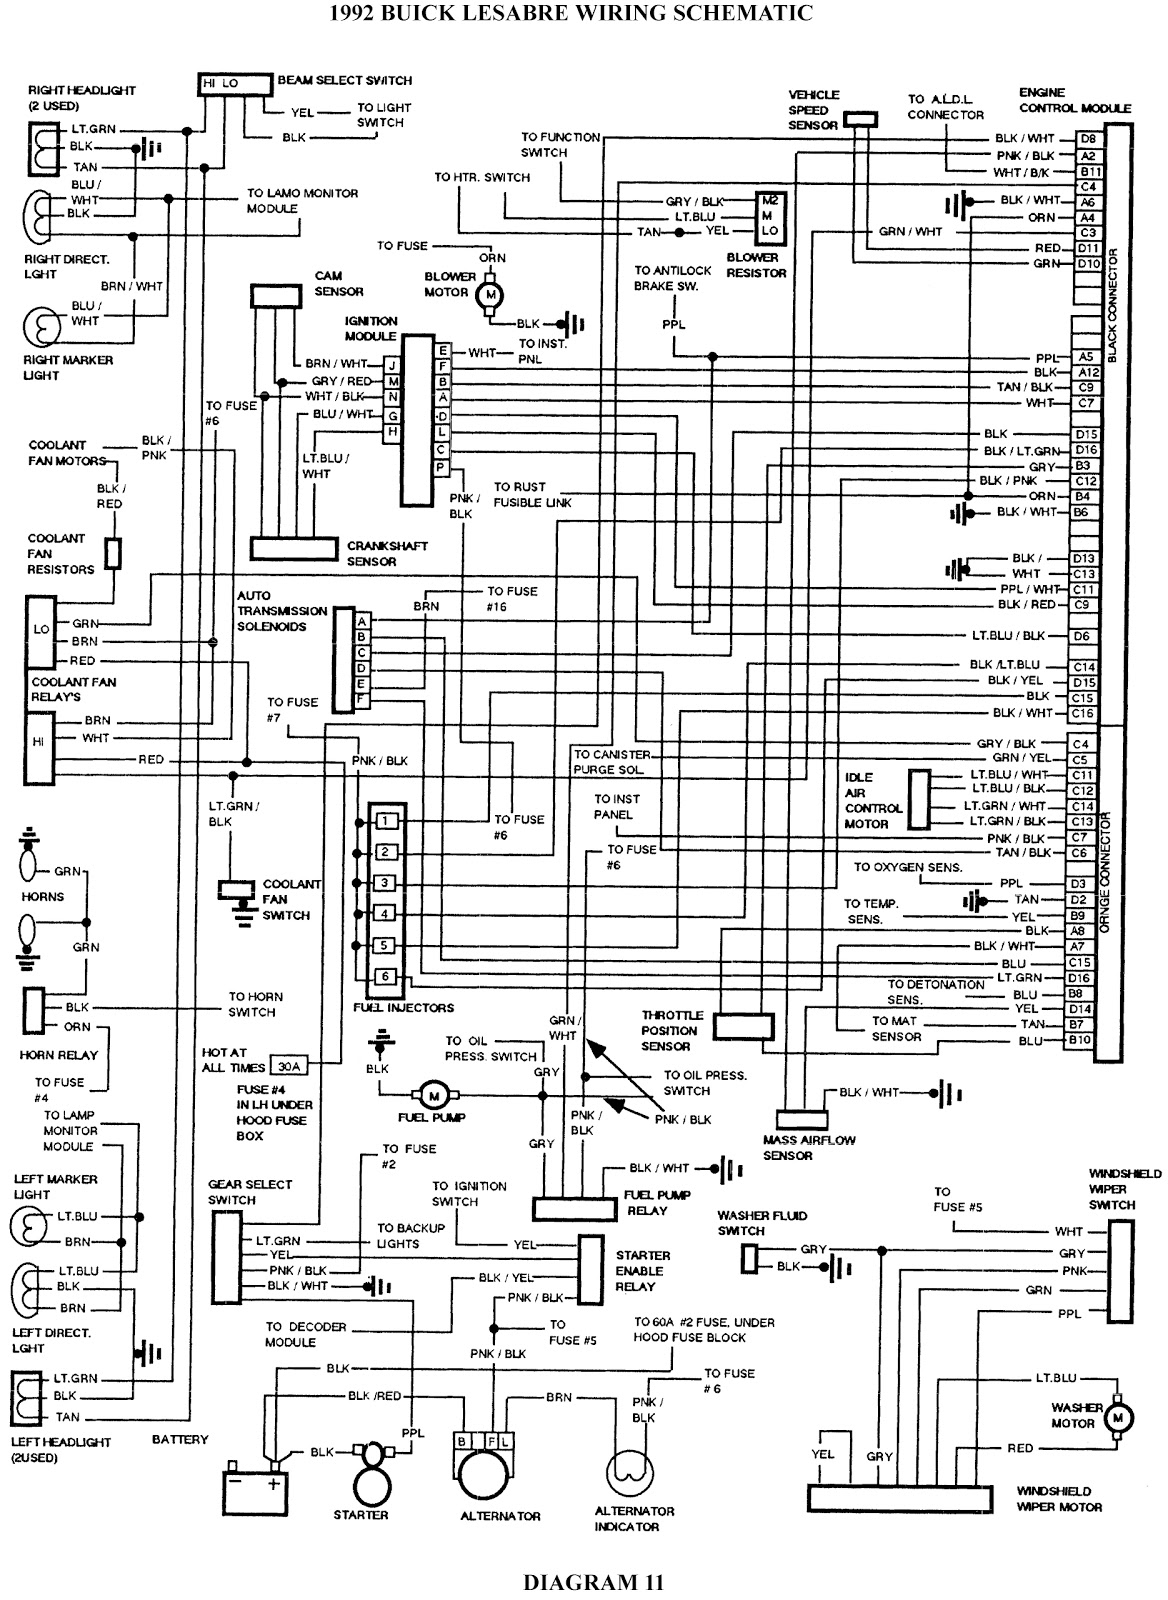 wiring diagram 1990 buick lesabre wiring diagram blog 2000 Buick Regal Ignition Switch Wiring Diagram 1990 buick lesabre engine diagram wiring diagrams hubs 1990 chevy camaro wiring diagram wiring diagram 1990 buick lesabre